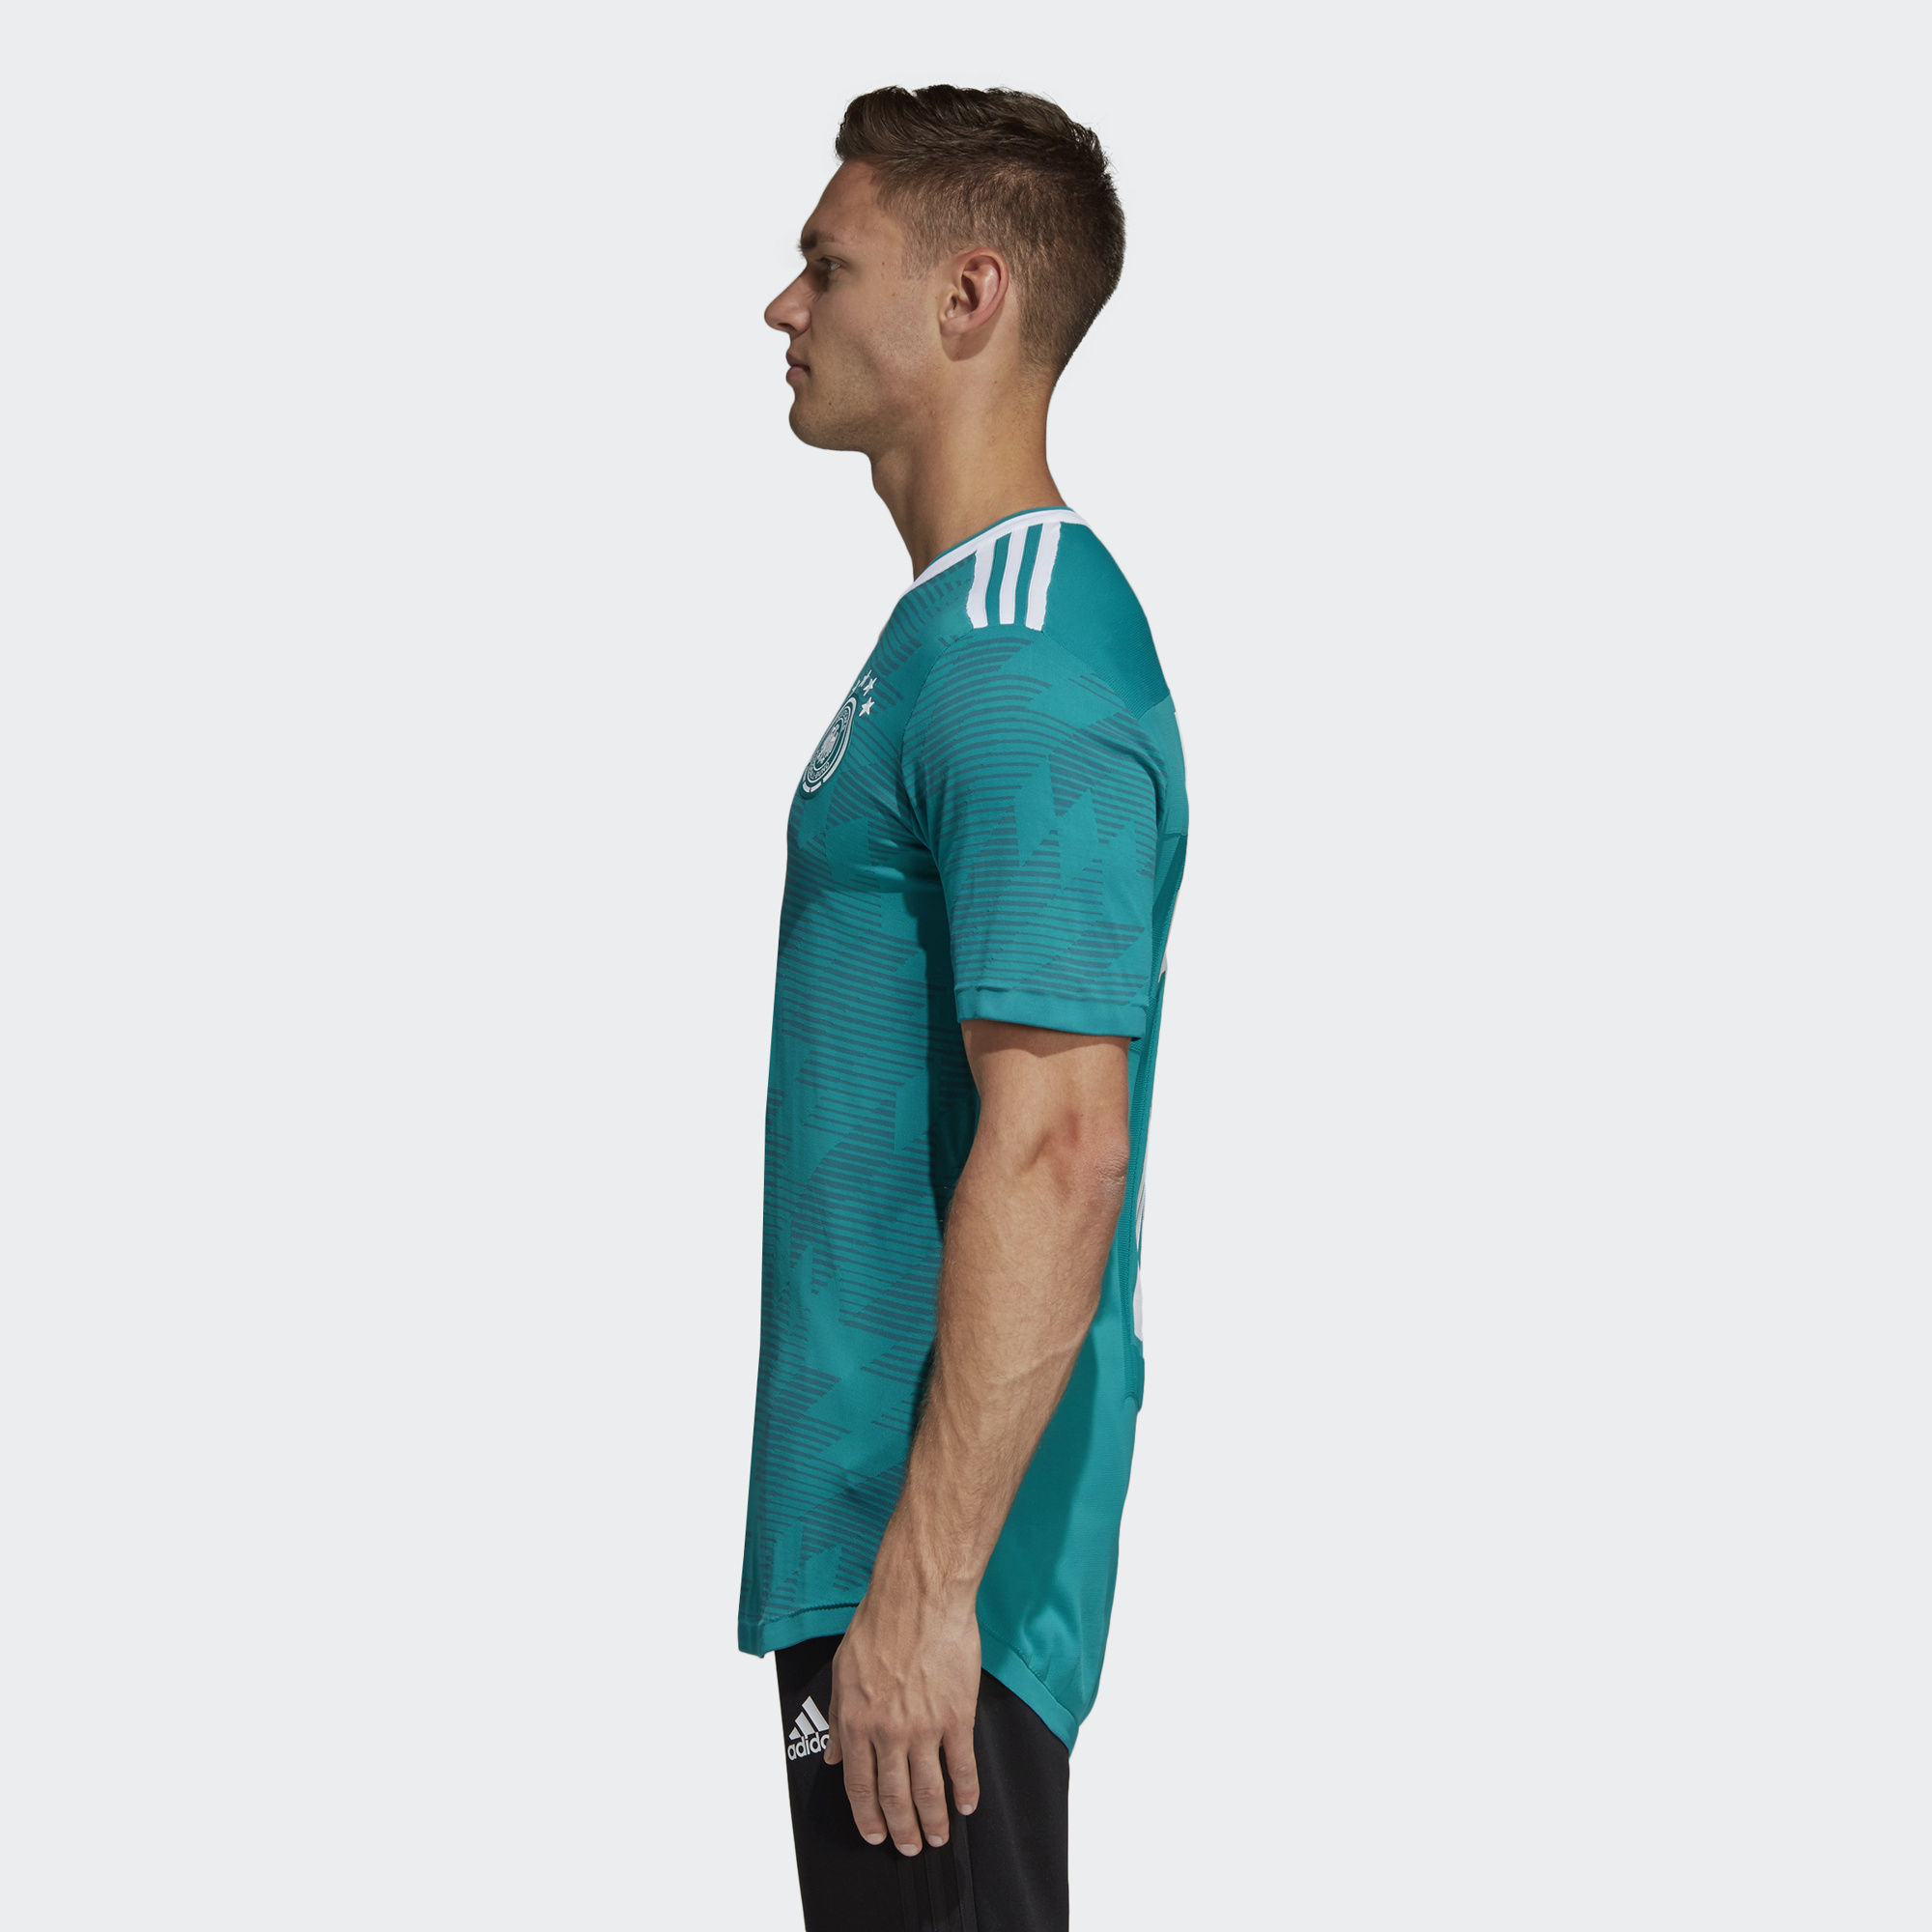 425cd67ae Germany 2018 Adidas Primeknit Away Shirt - Eqt Green   Real Teal   White